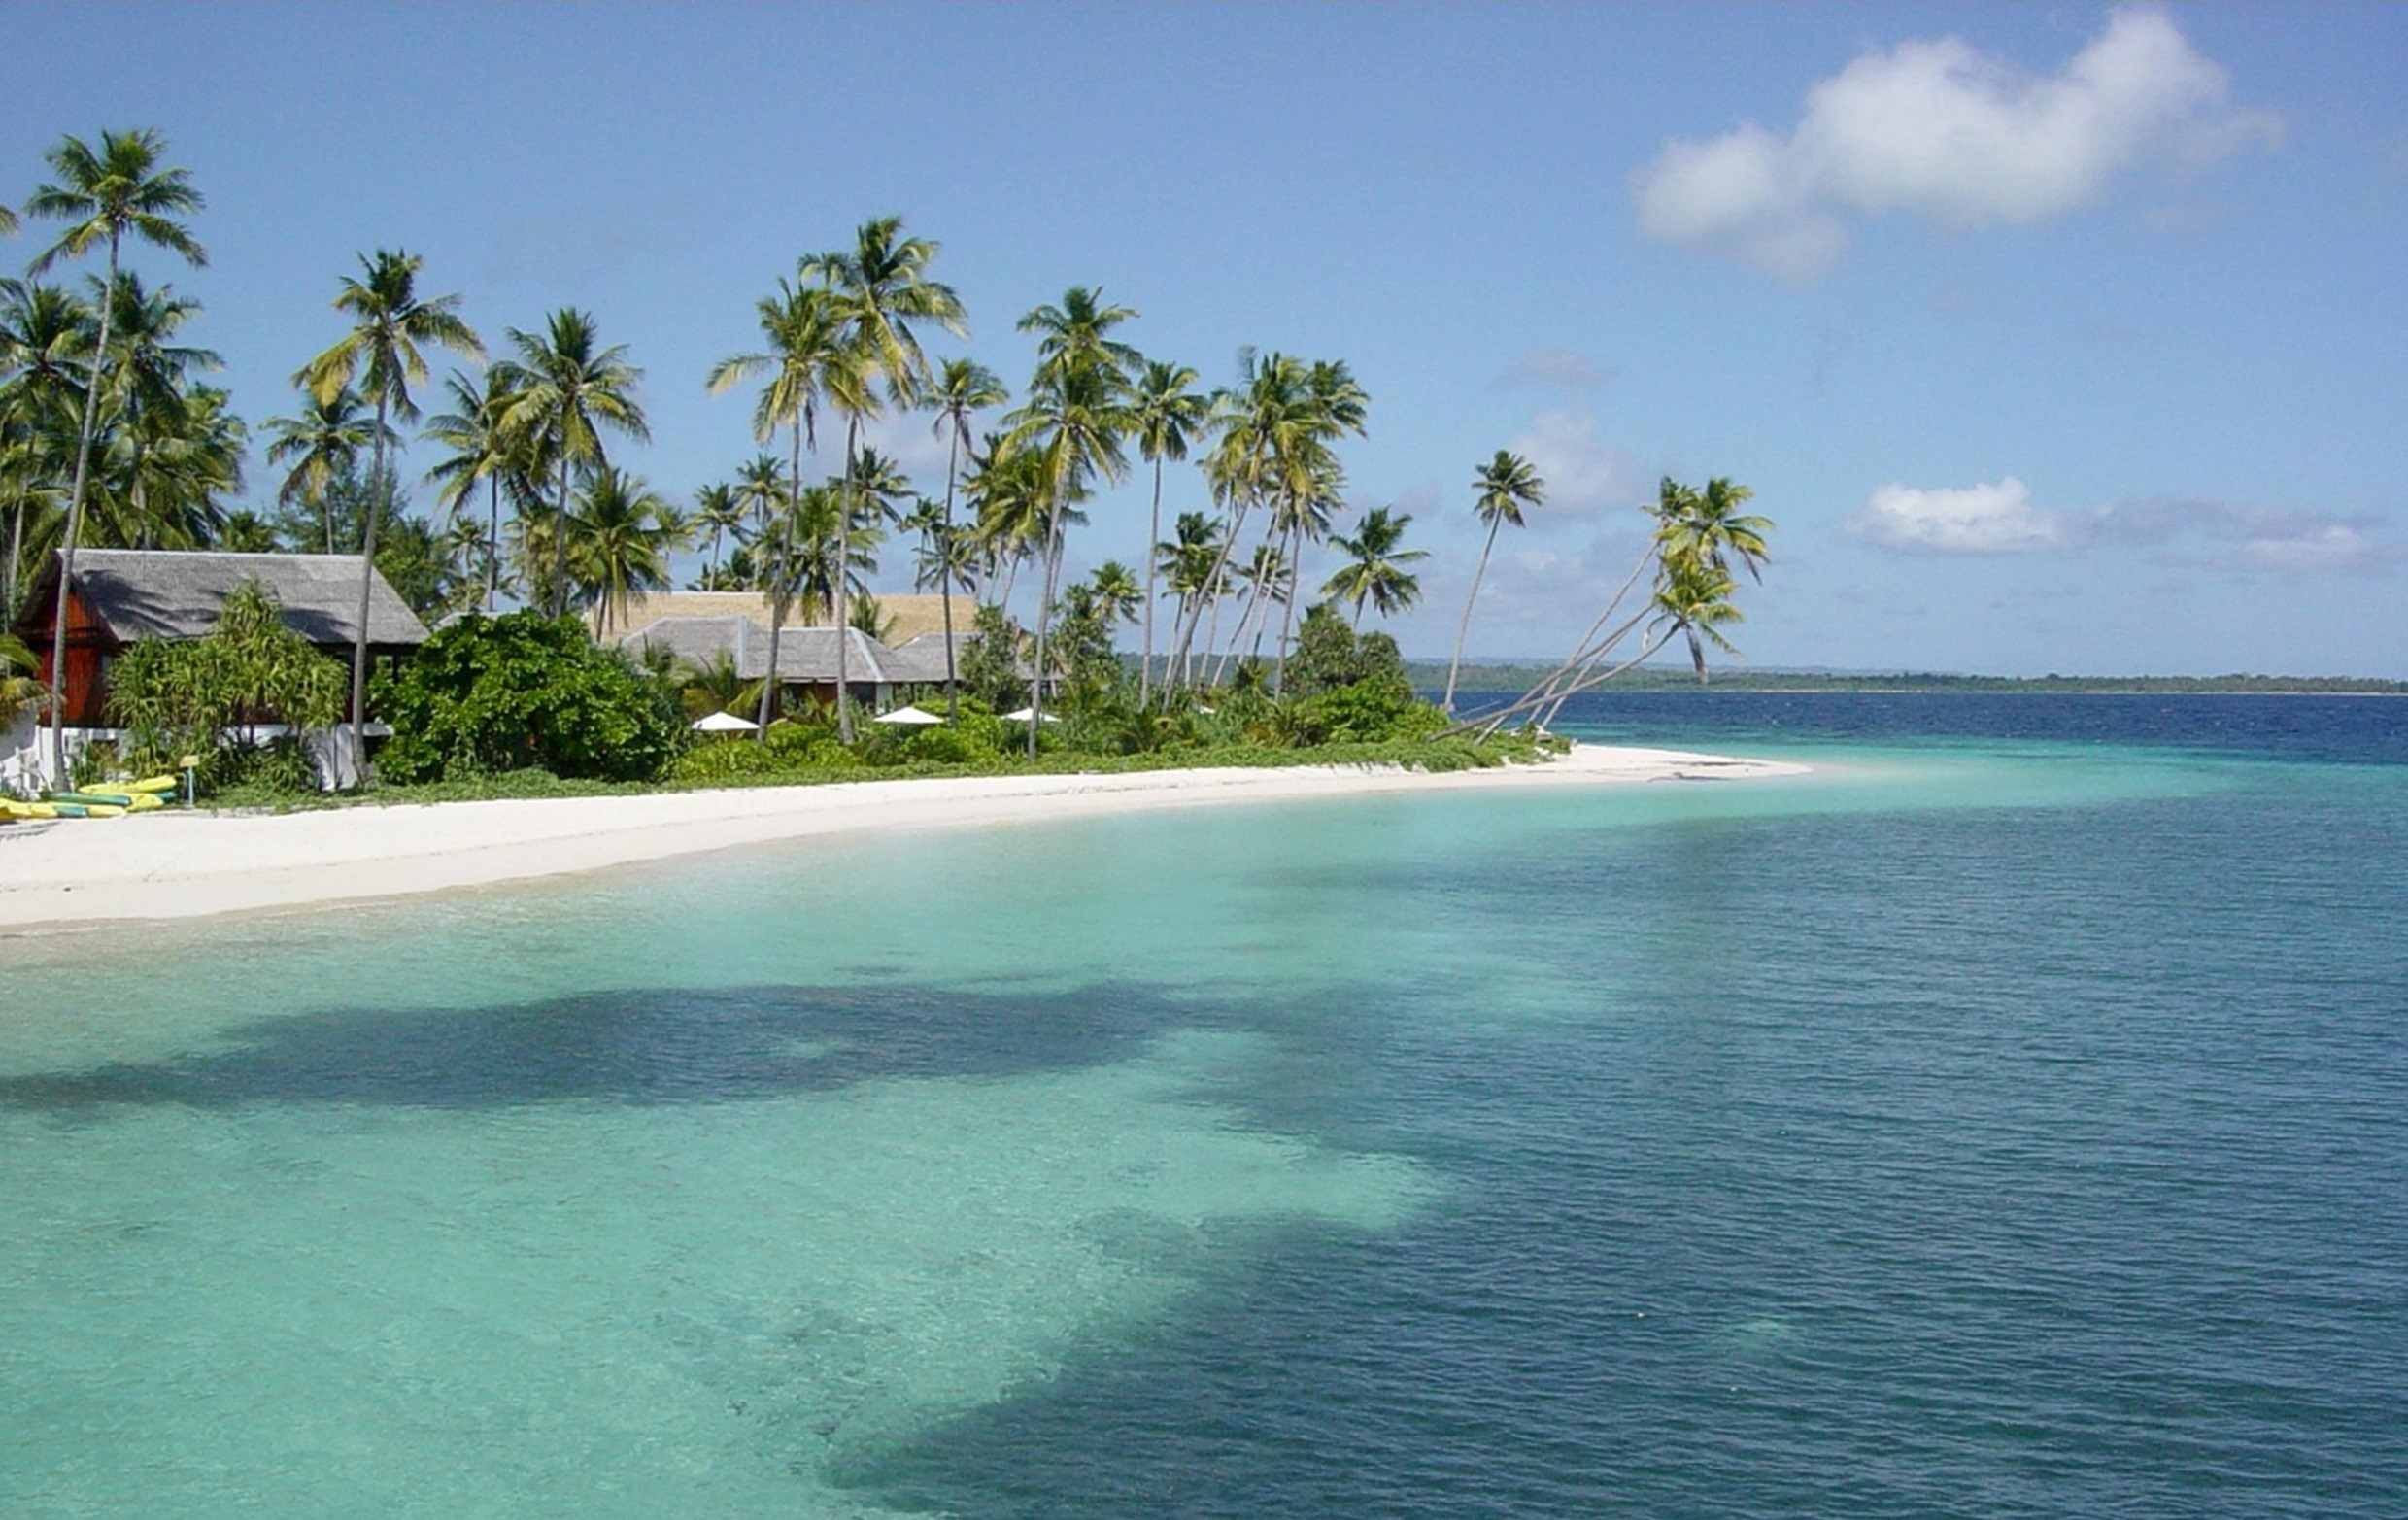 anano beach one of tourist attraction in wakatobi